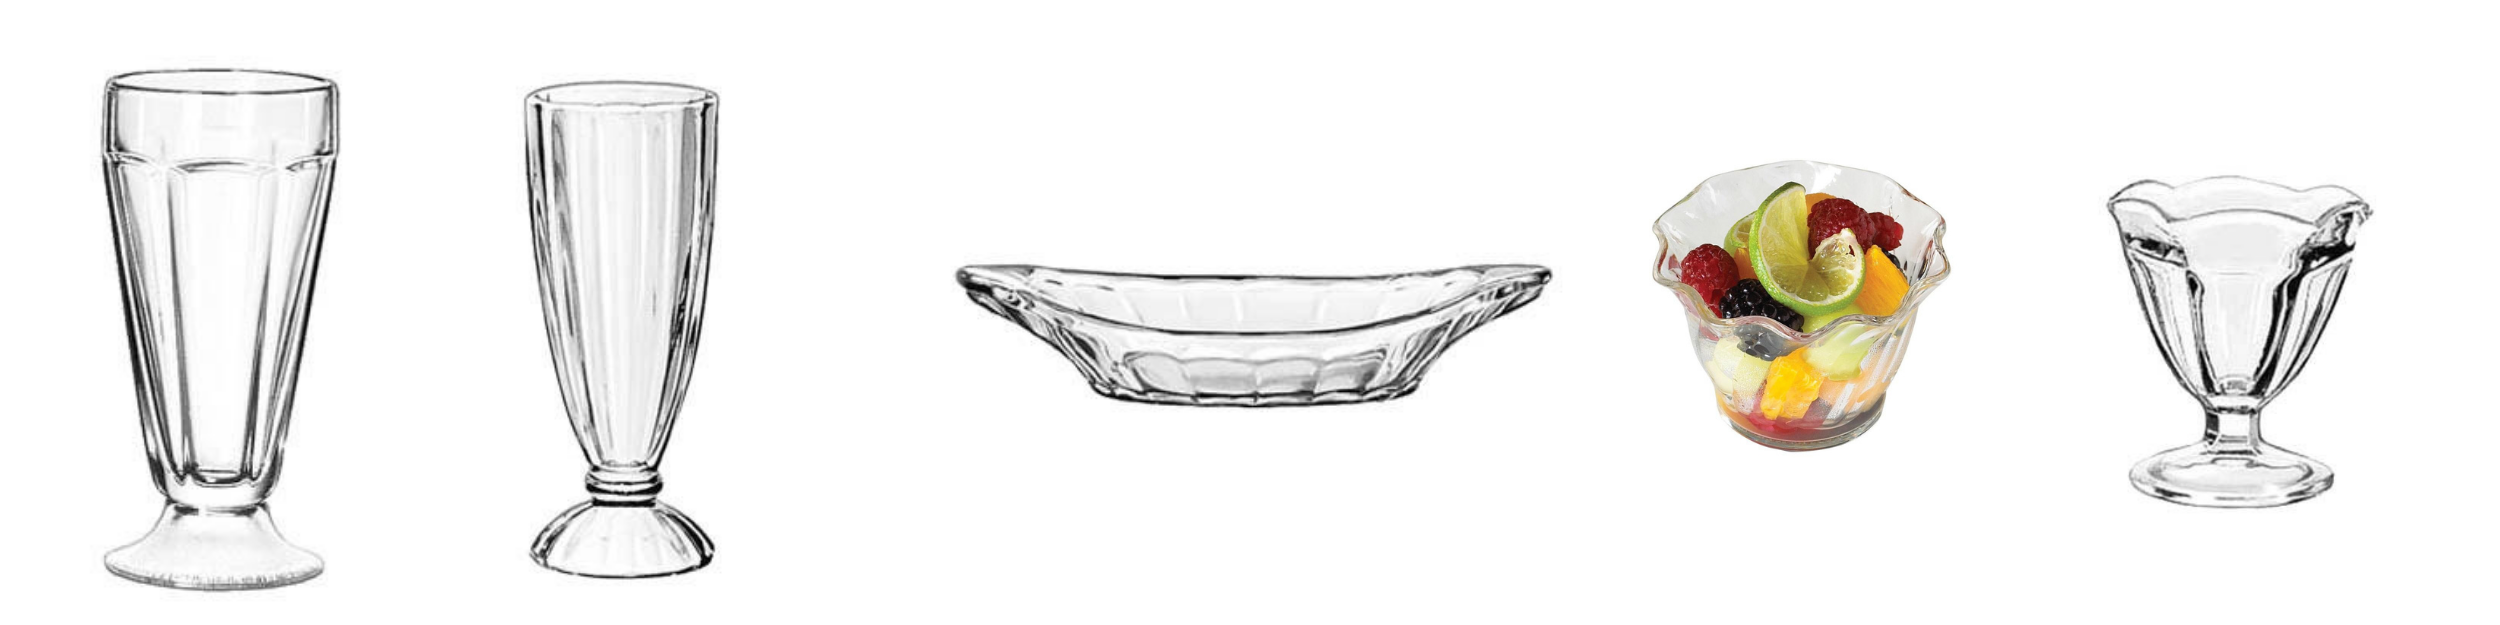 Dessert Dishes and Glass Fountainware